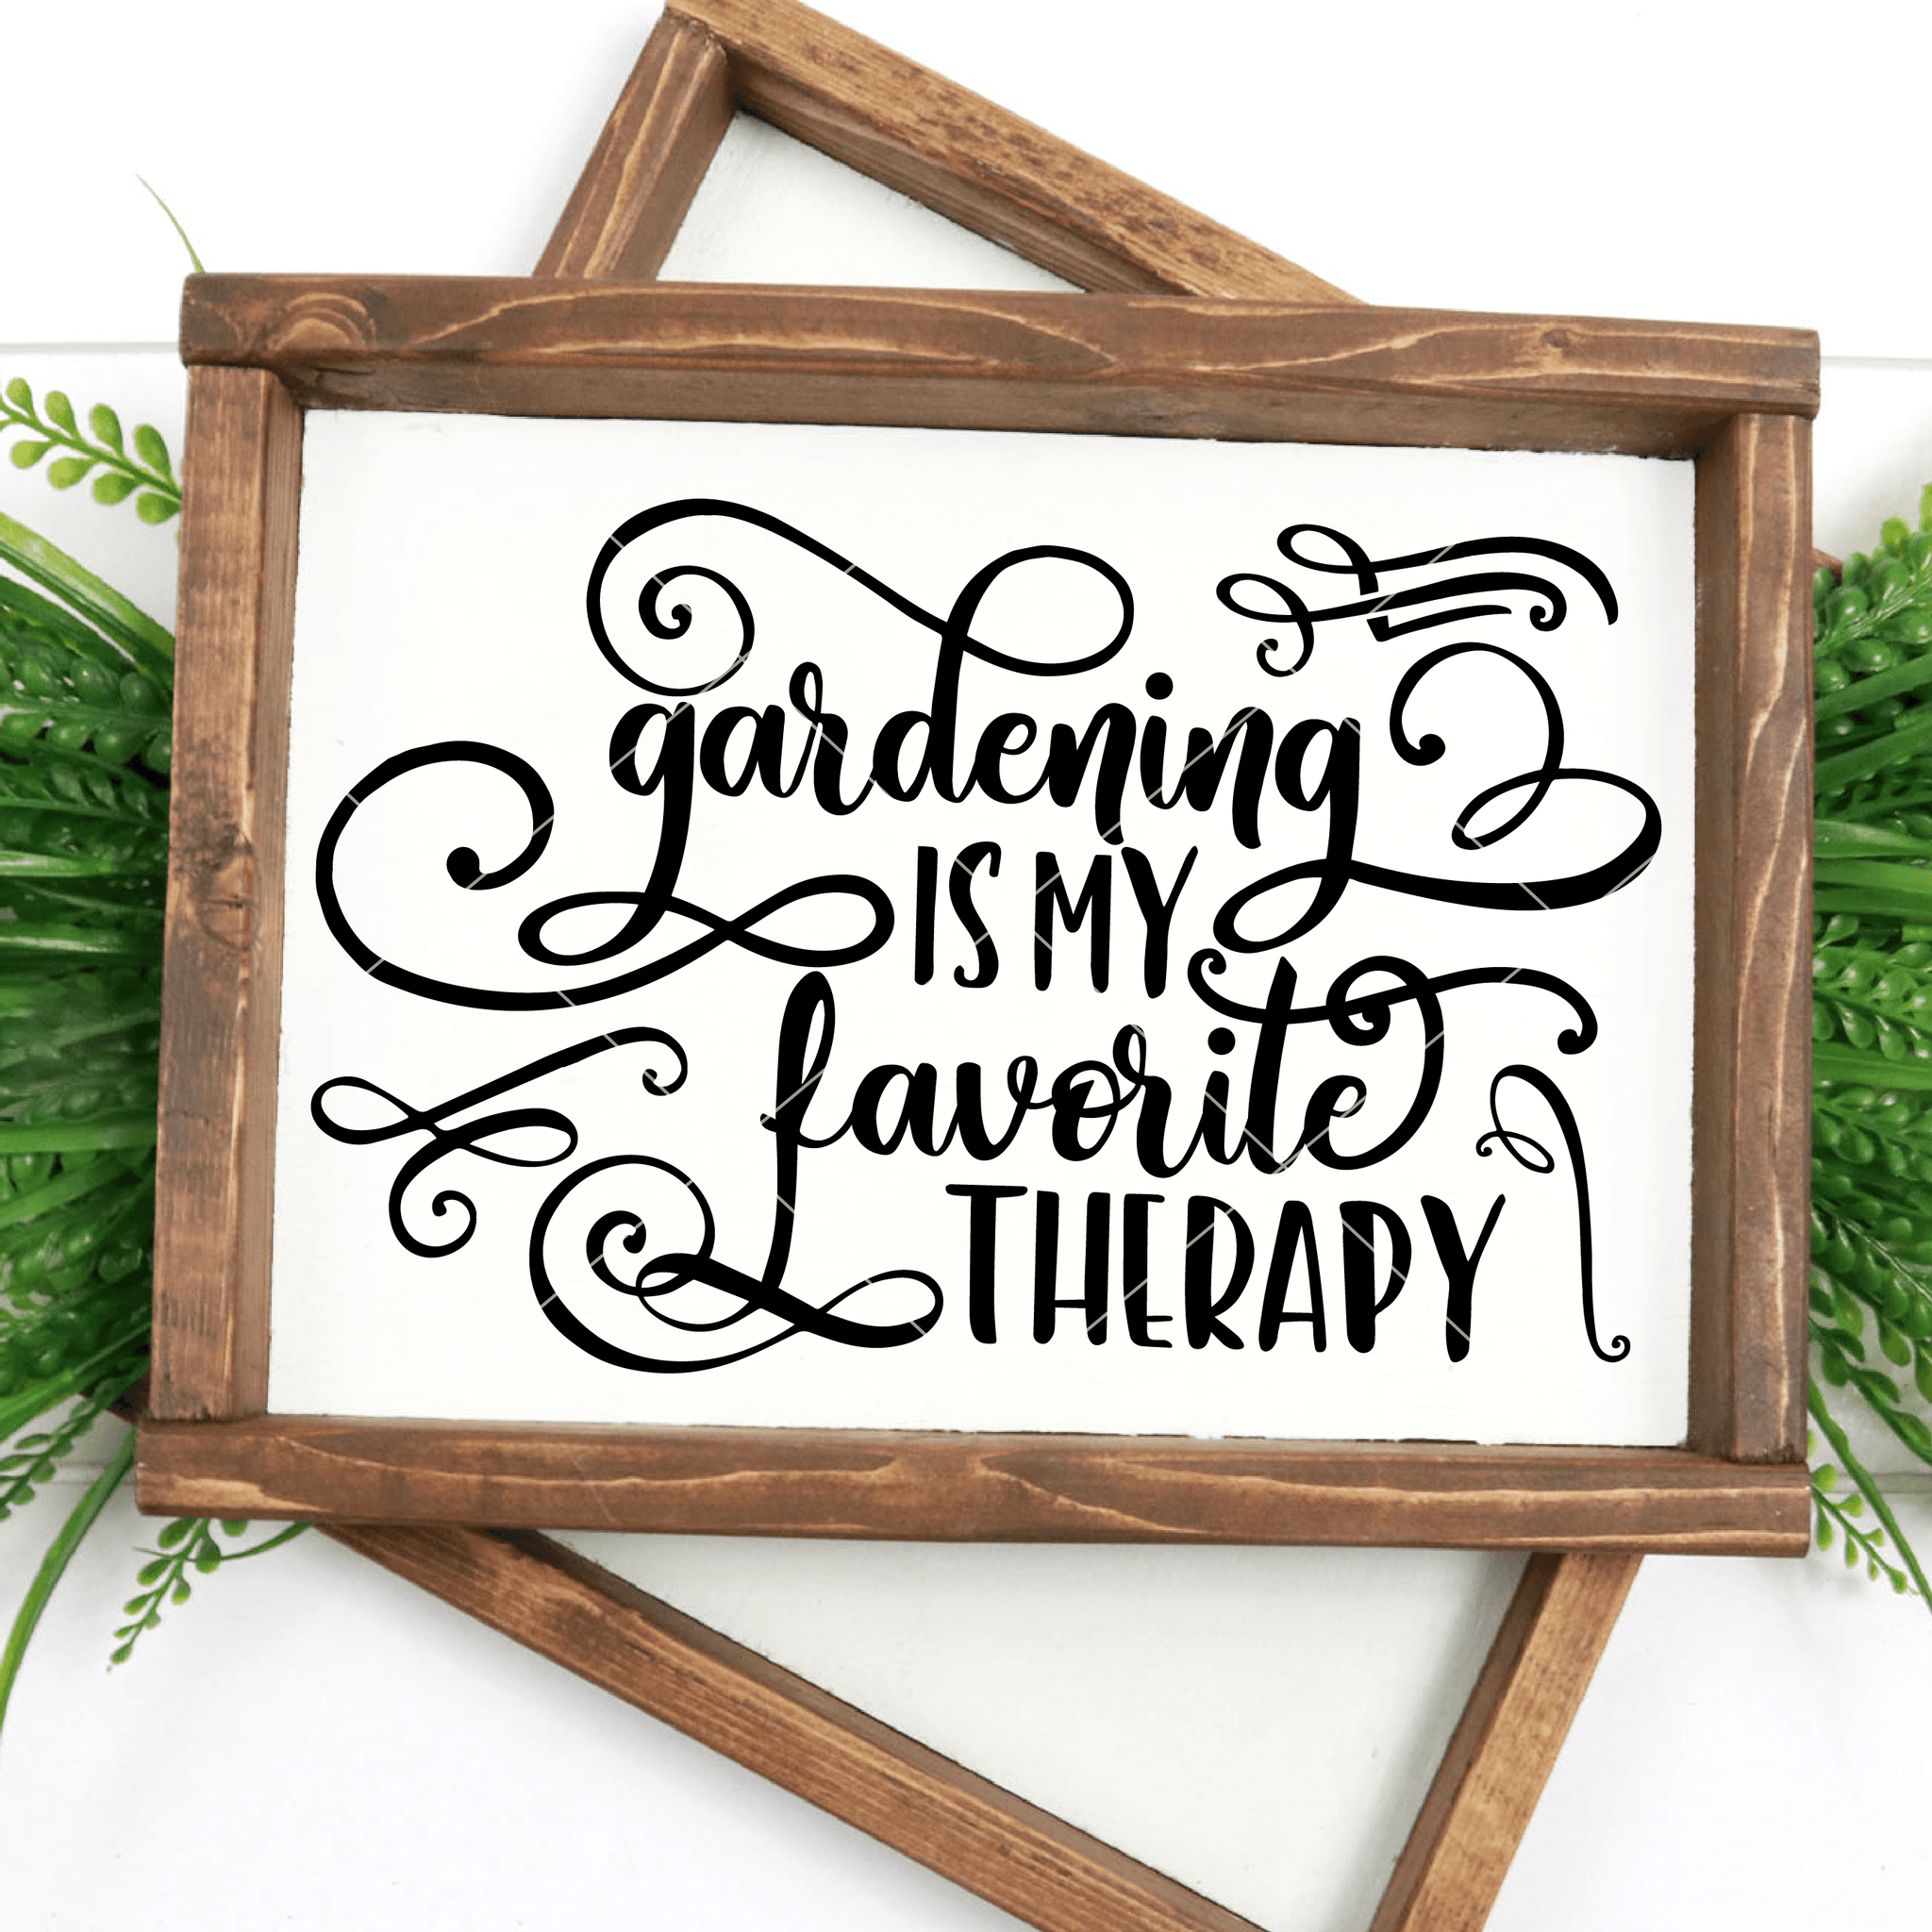 Gardening Is My Favorite Therapy SVG File - Commercial Use SVG Files